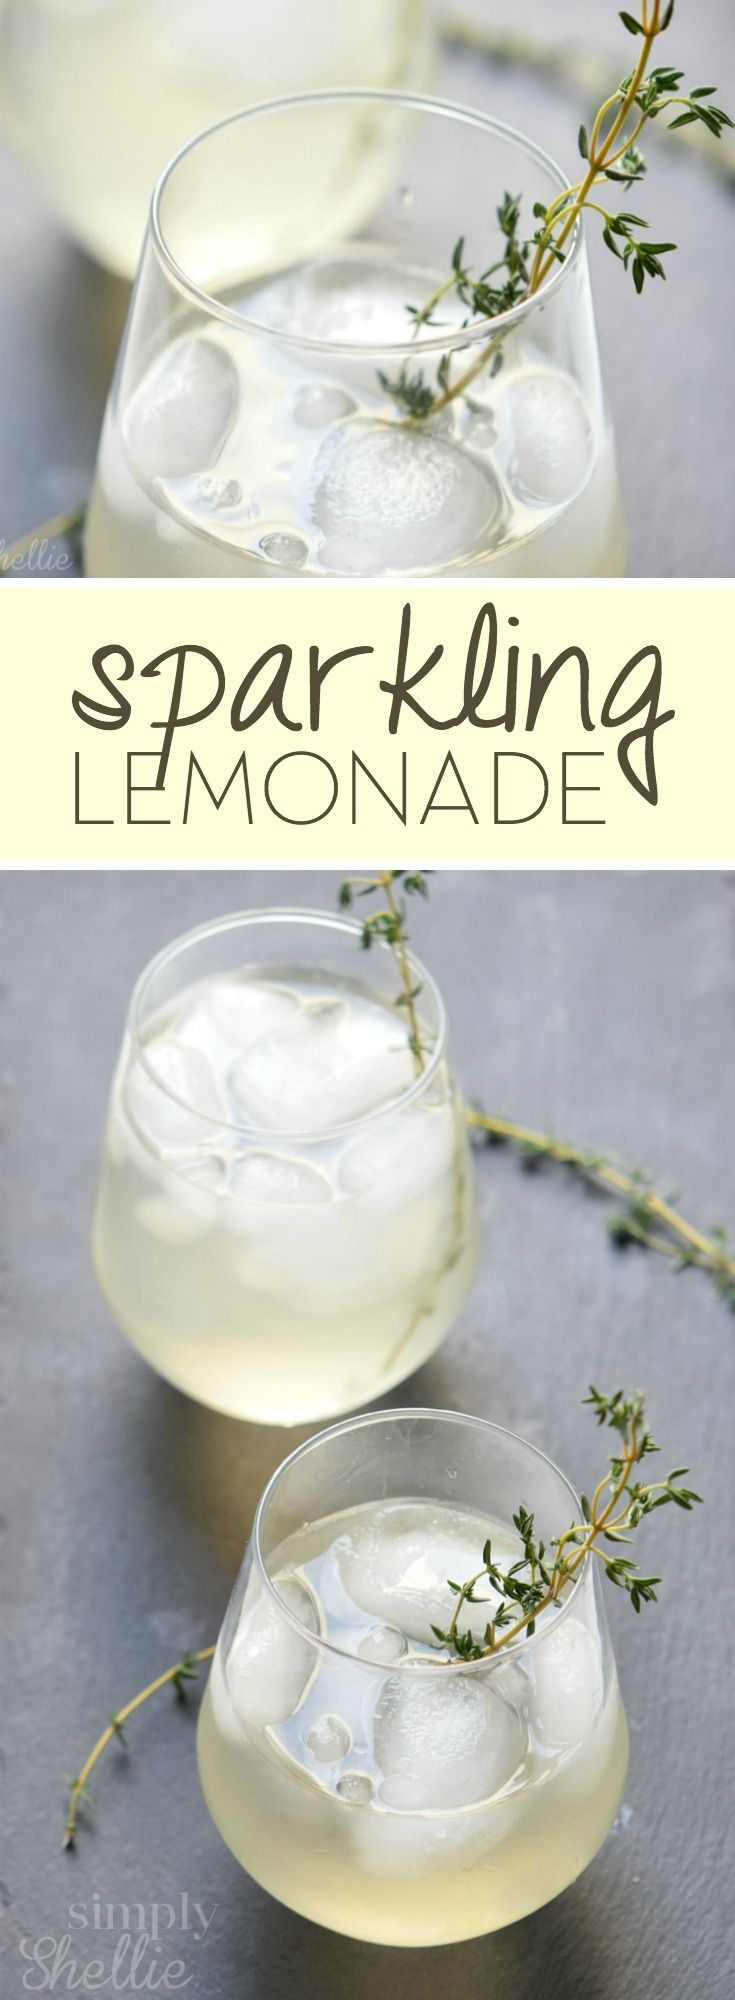 If you love lemonade, try this updated sparkling version. It's cool and refreshing. The perfect lemonade recipe for summer!